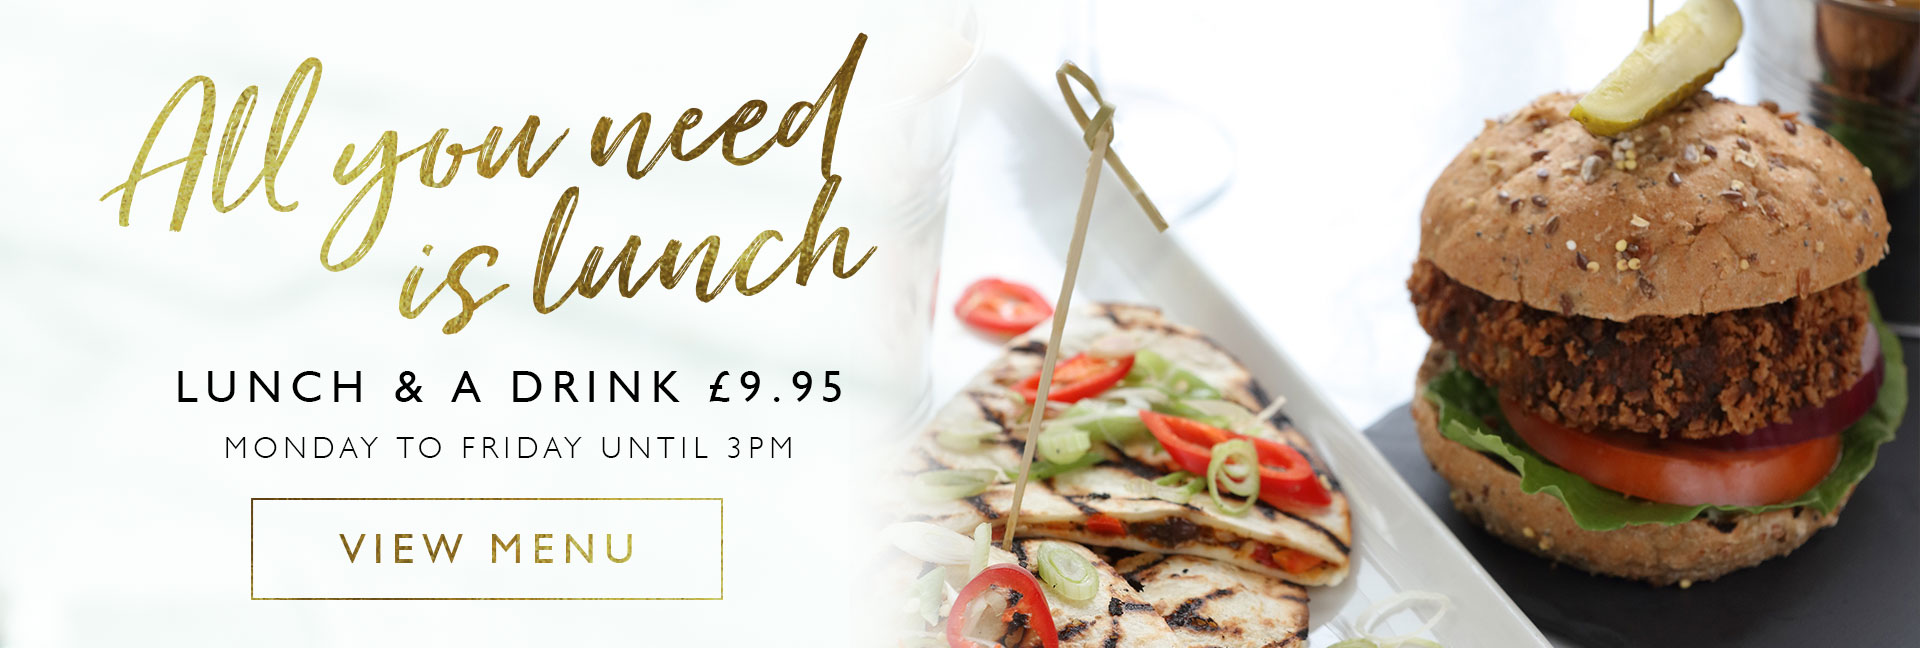 Lunch Offer at All Bar One Manchester